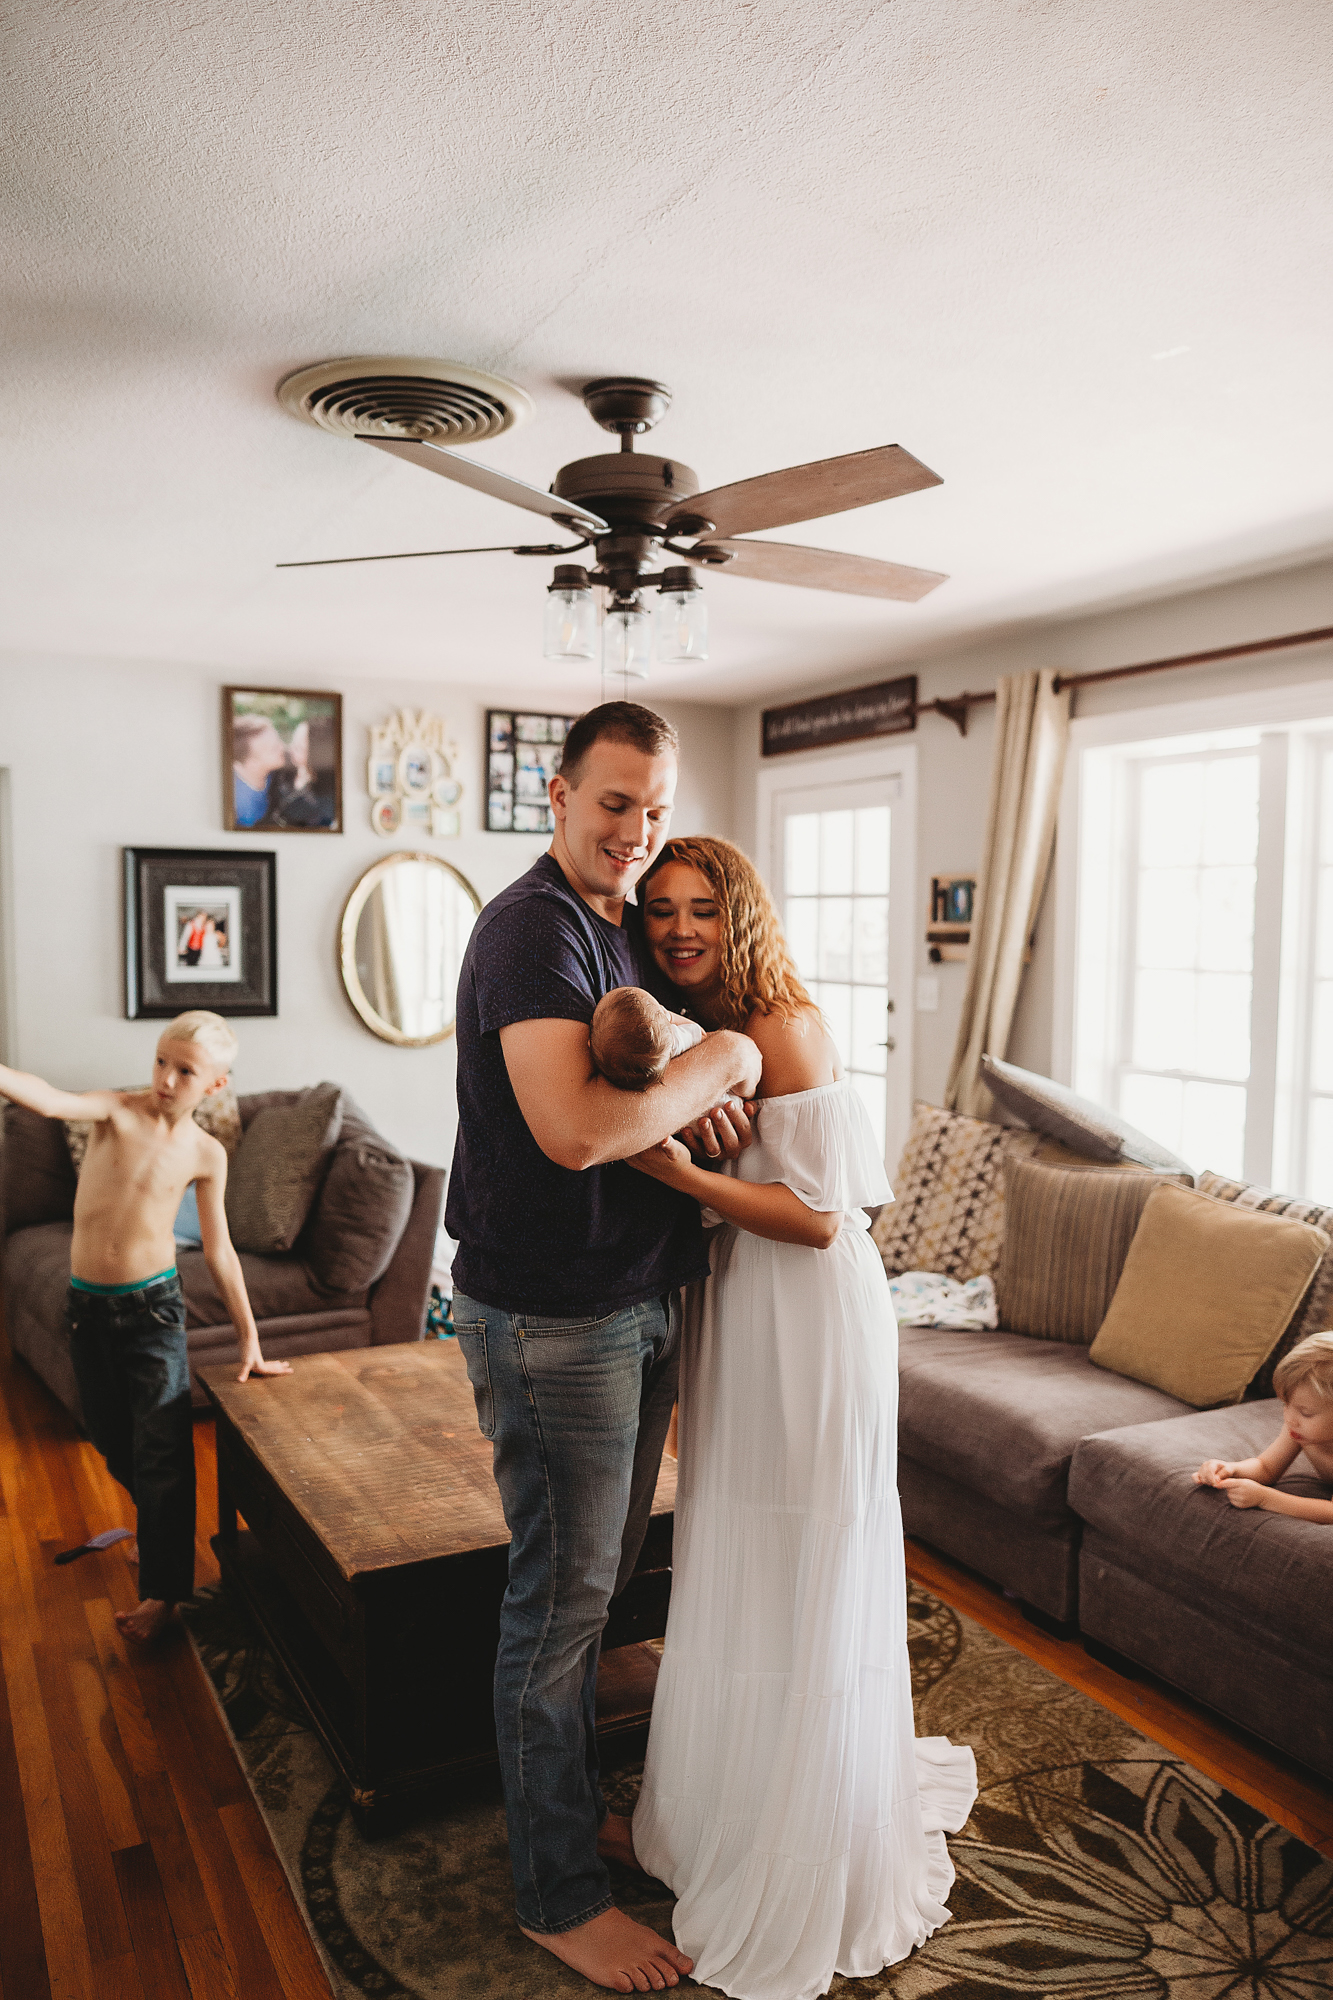 couples newborn photo shoot in home, pinellas county fine art lifefstyle photographer